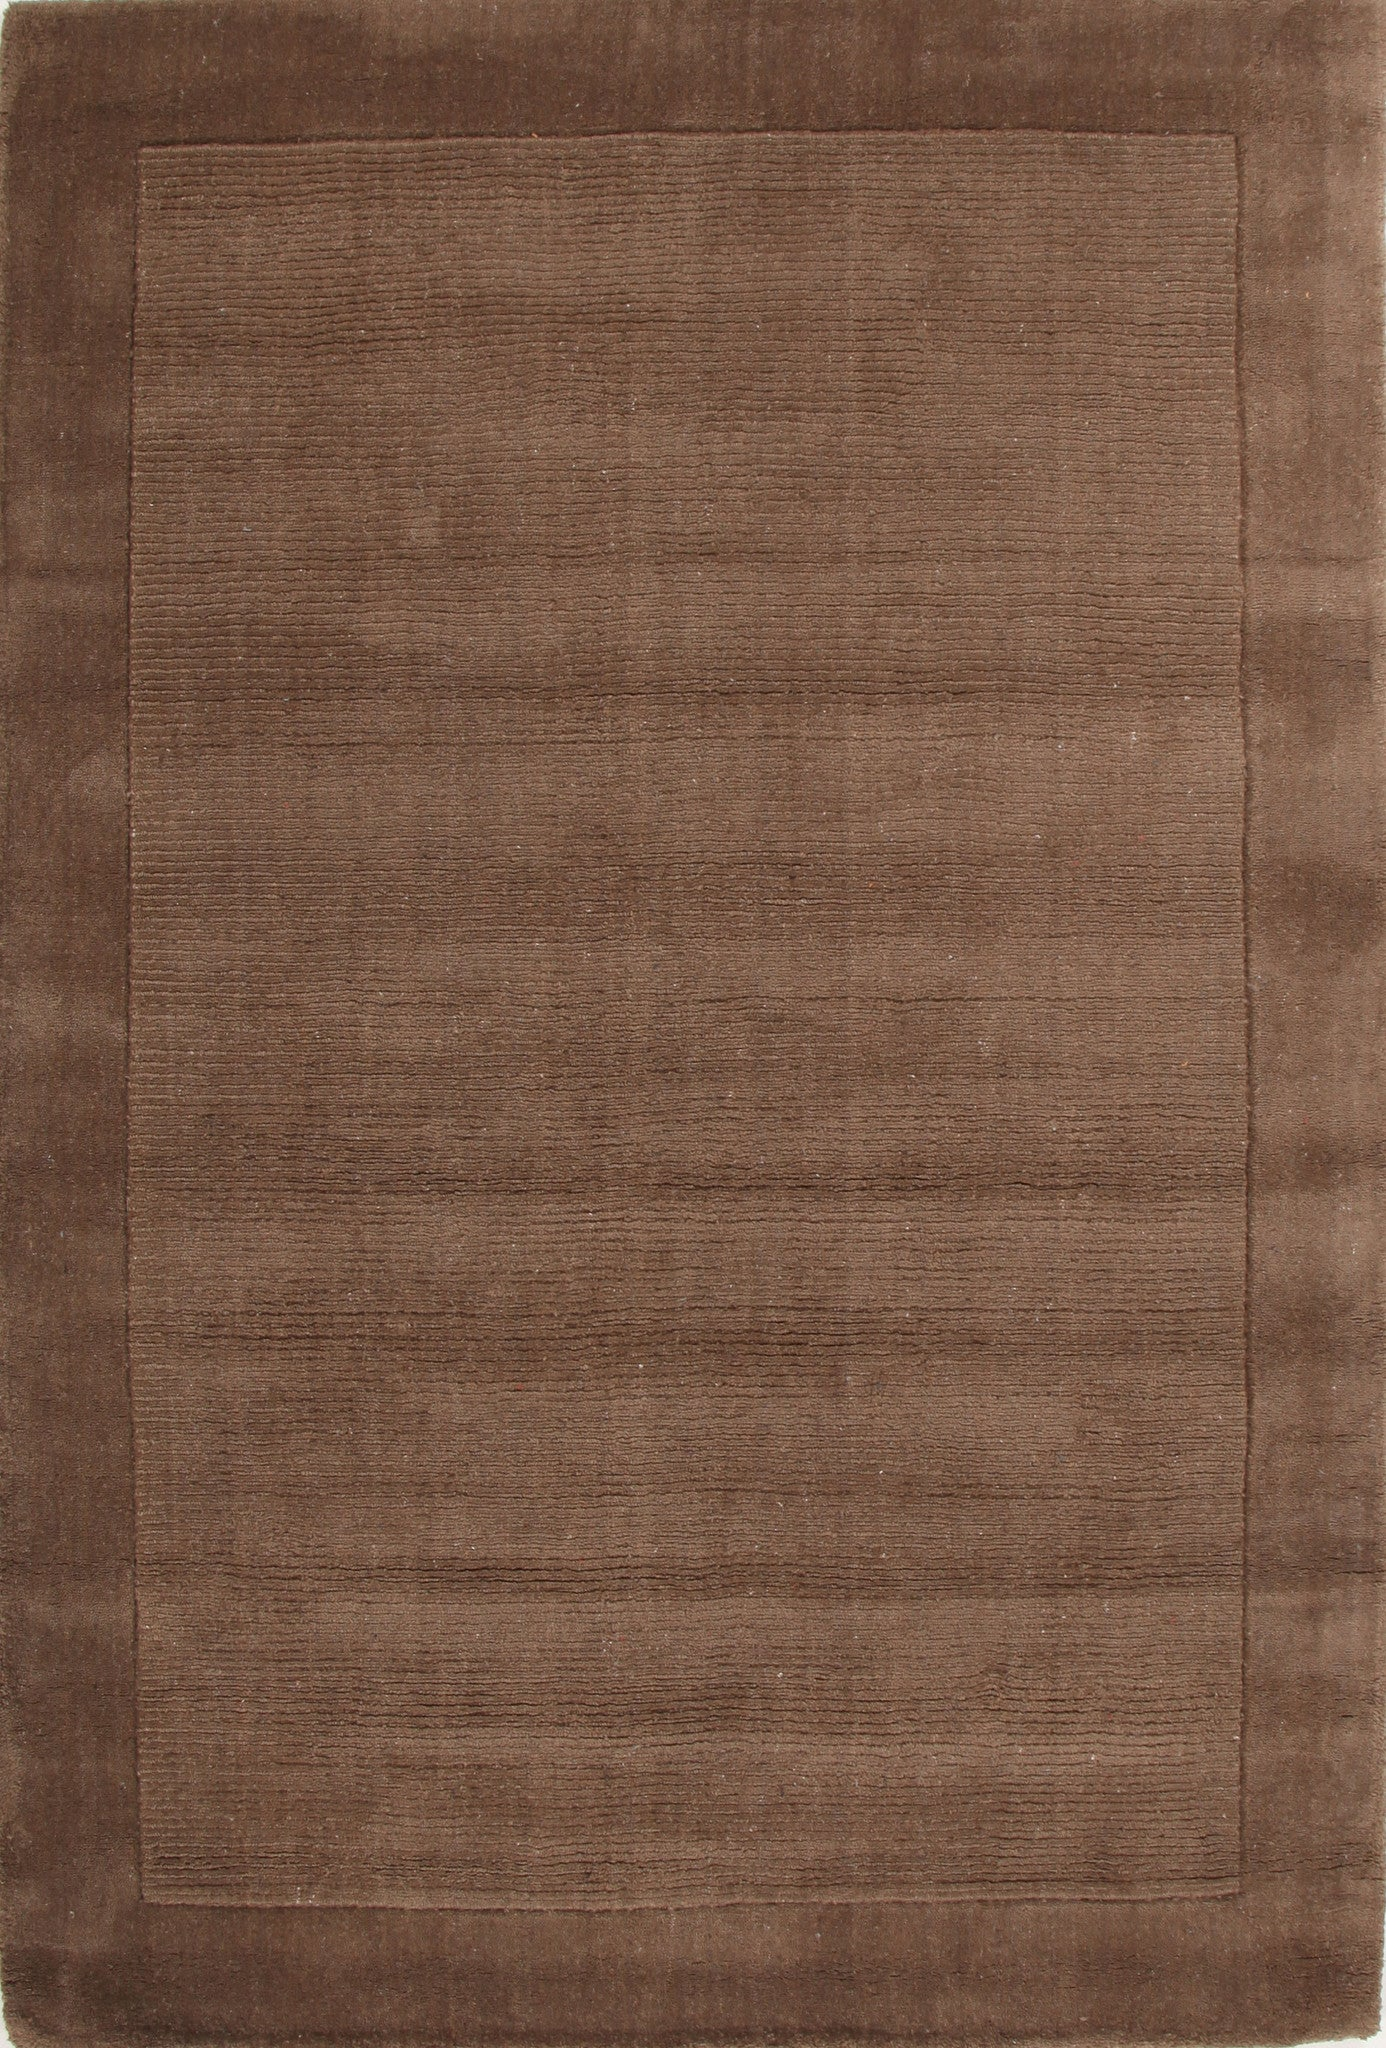 Timeless Trends Wool Rug - Taupe